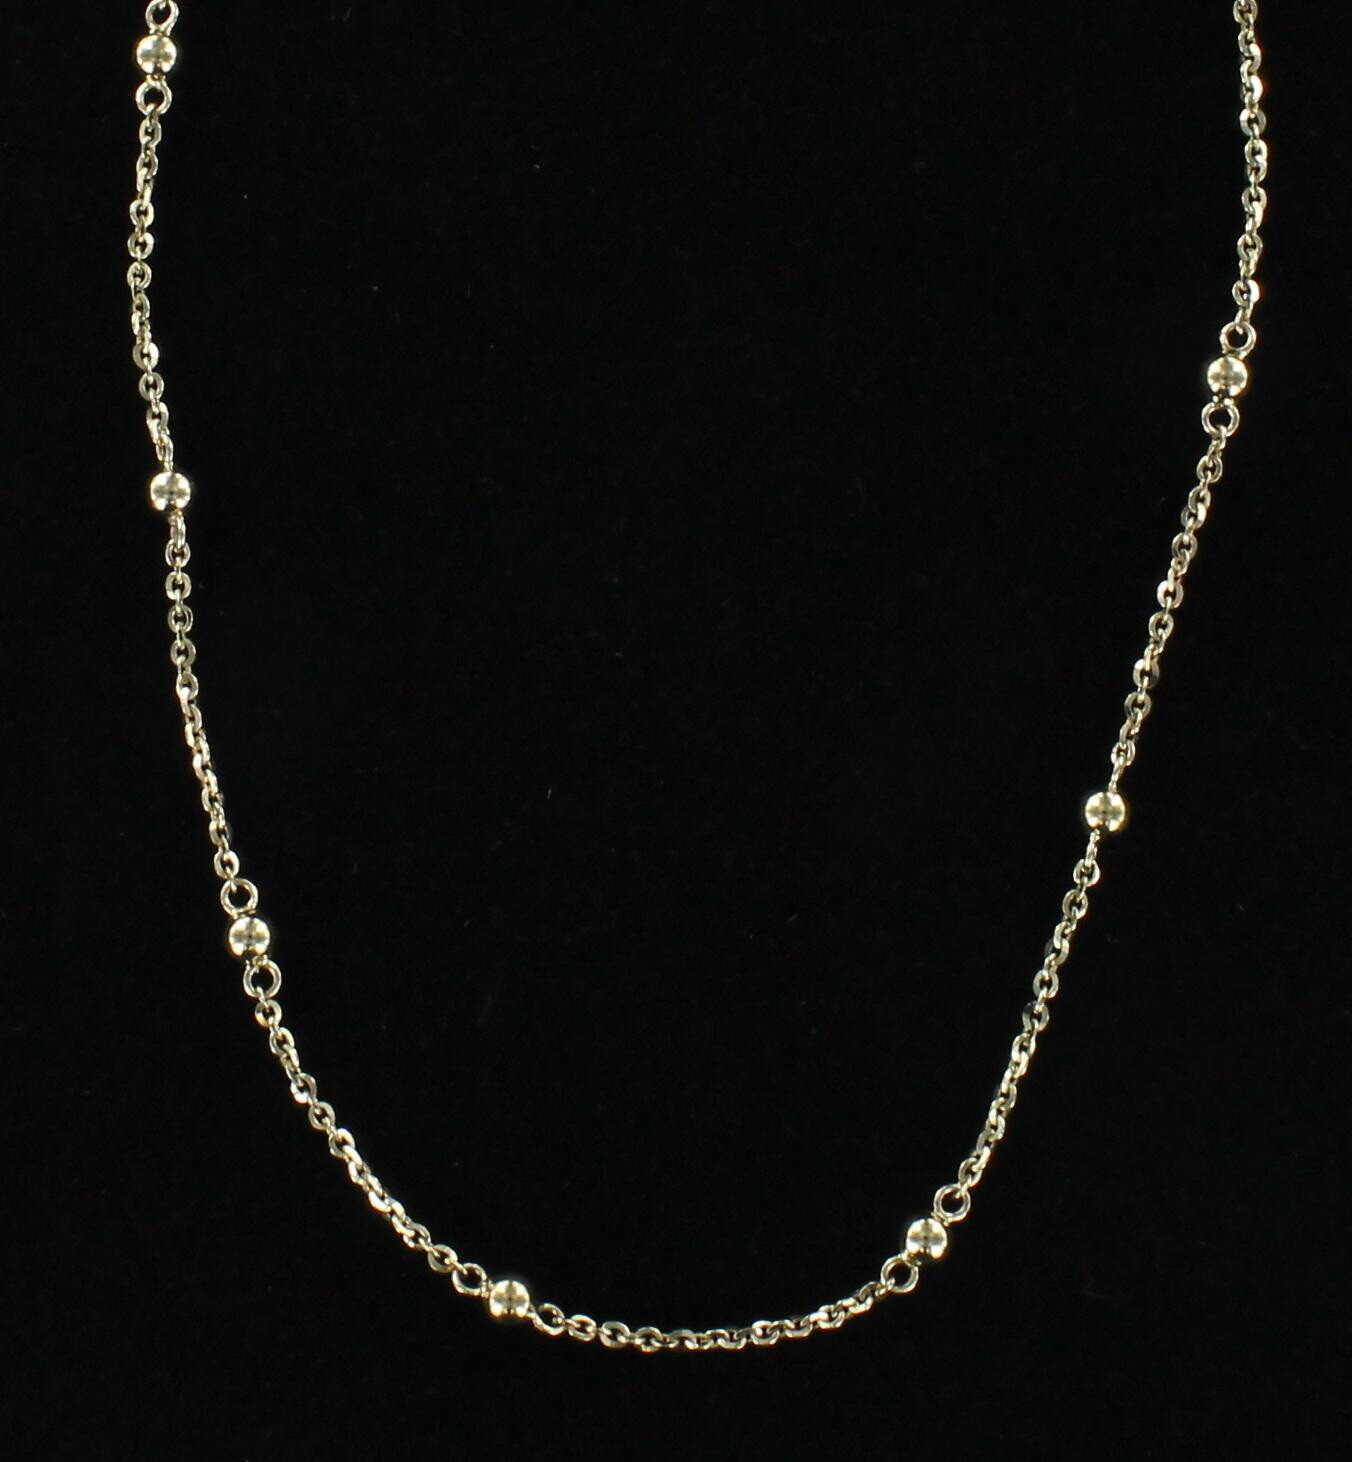 14KT YELLOW GOLD BALL CHAIN